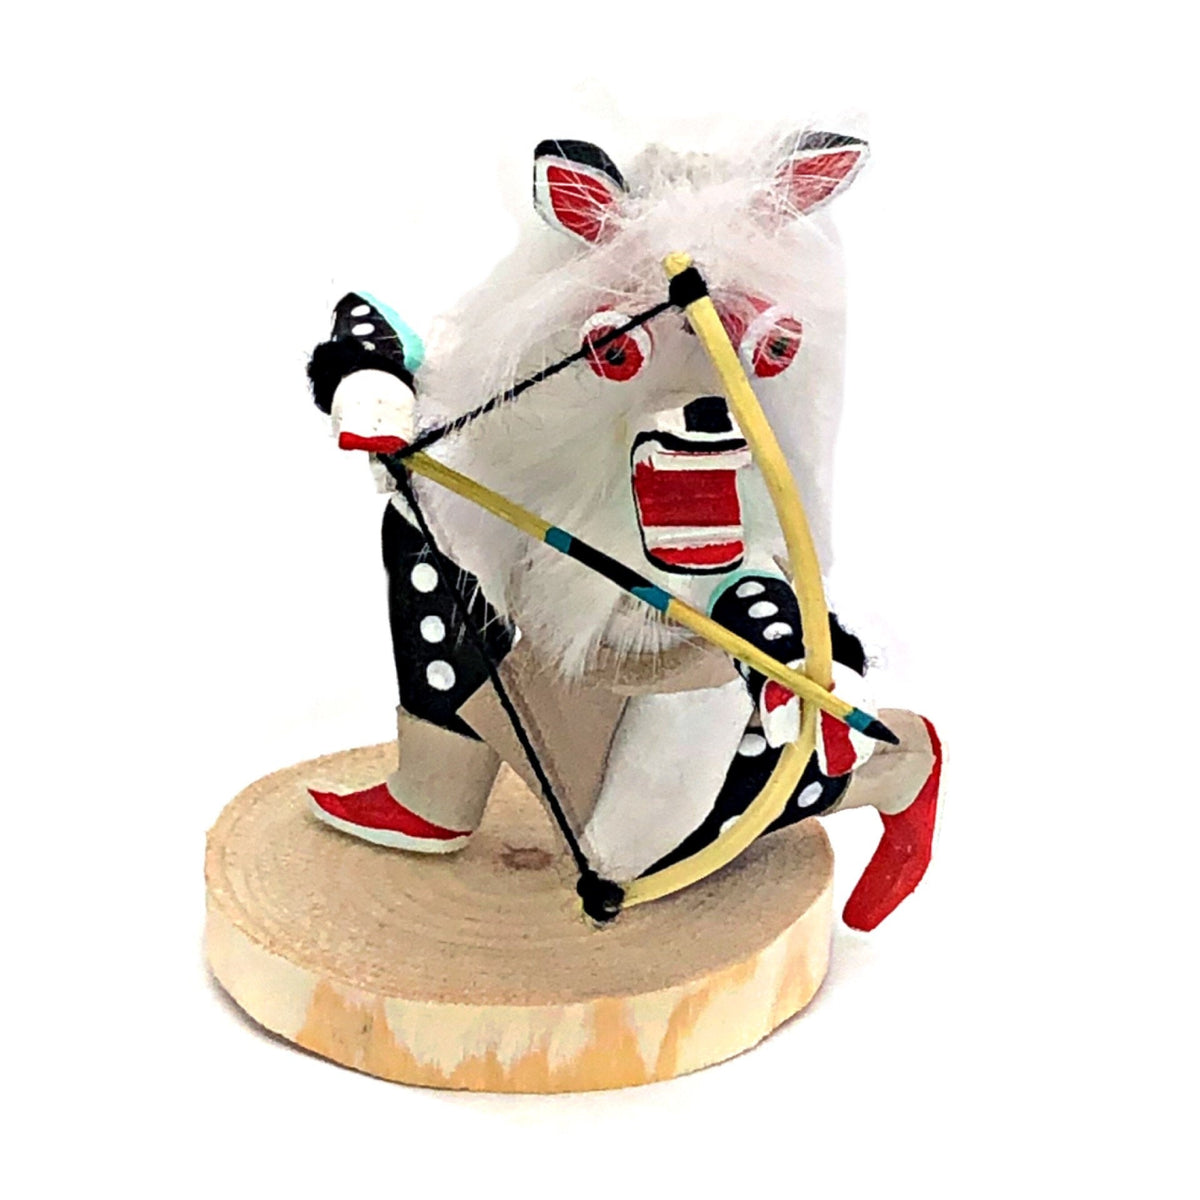 4 Inch Genuine Crouching White Wolf Kachina Doll, Navajo Native American Tribe Handmade in the USA, Artist Signed, Natural Materials